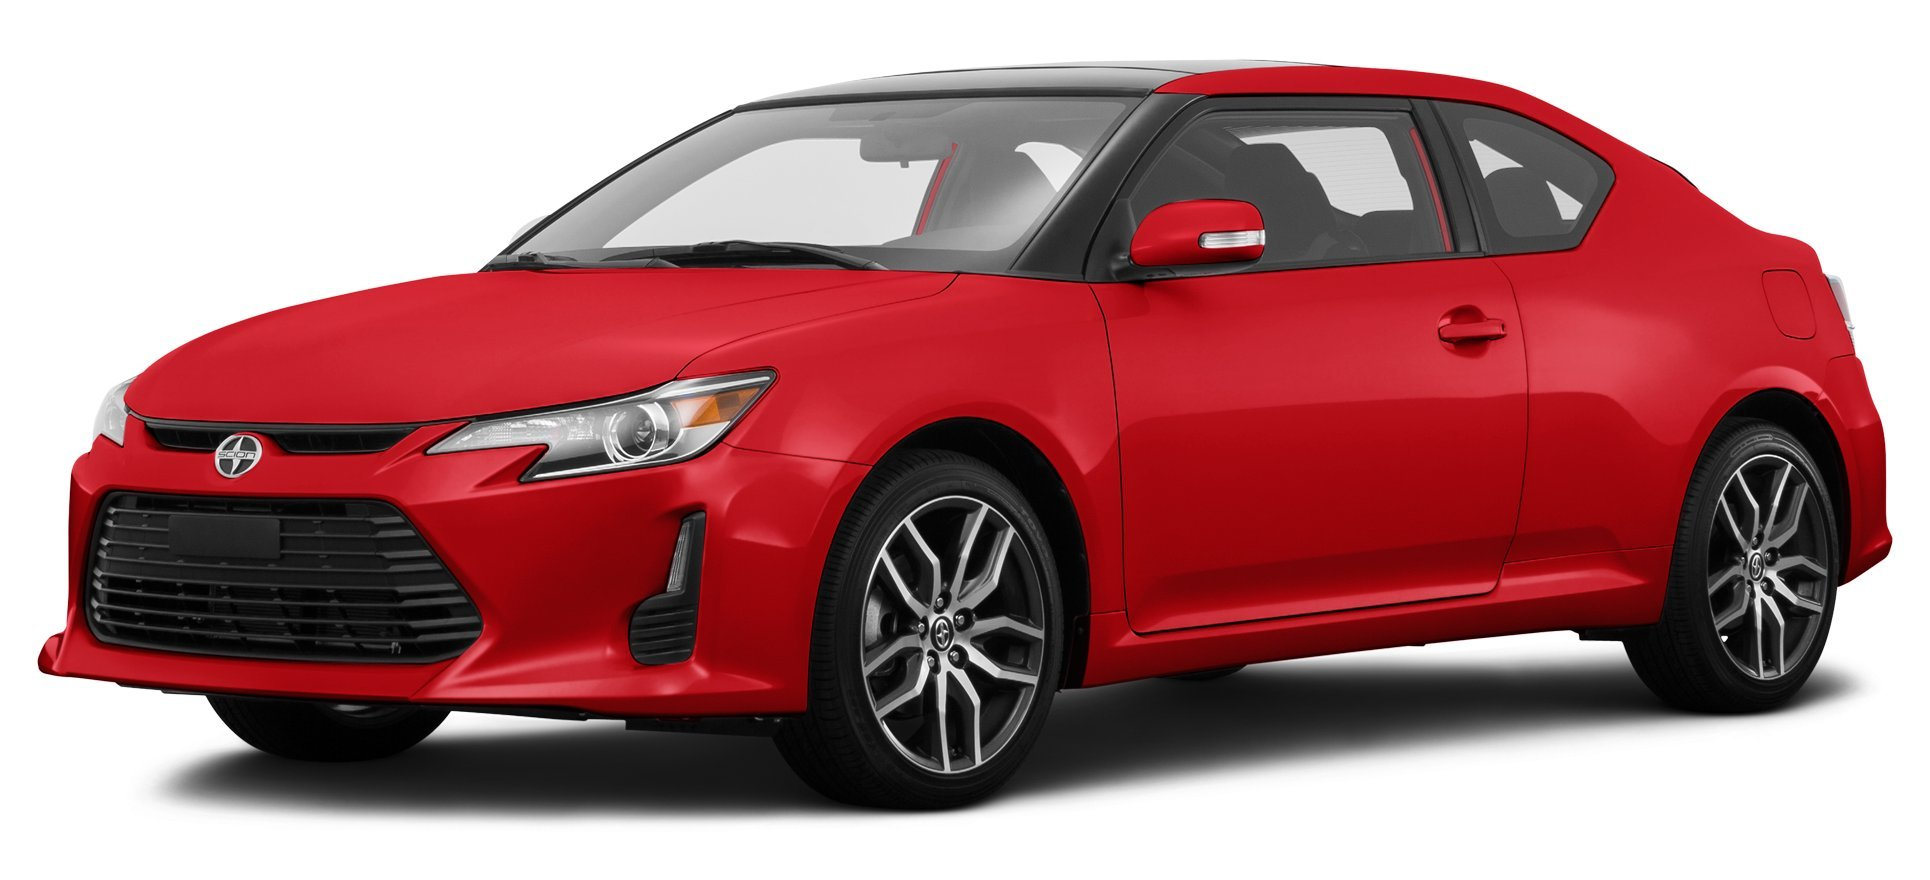 2016 scion tc reviews images and specs vehicles. Black Bedroom Furniture Sets. Home Design Ideas